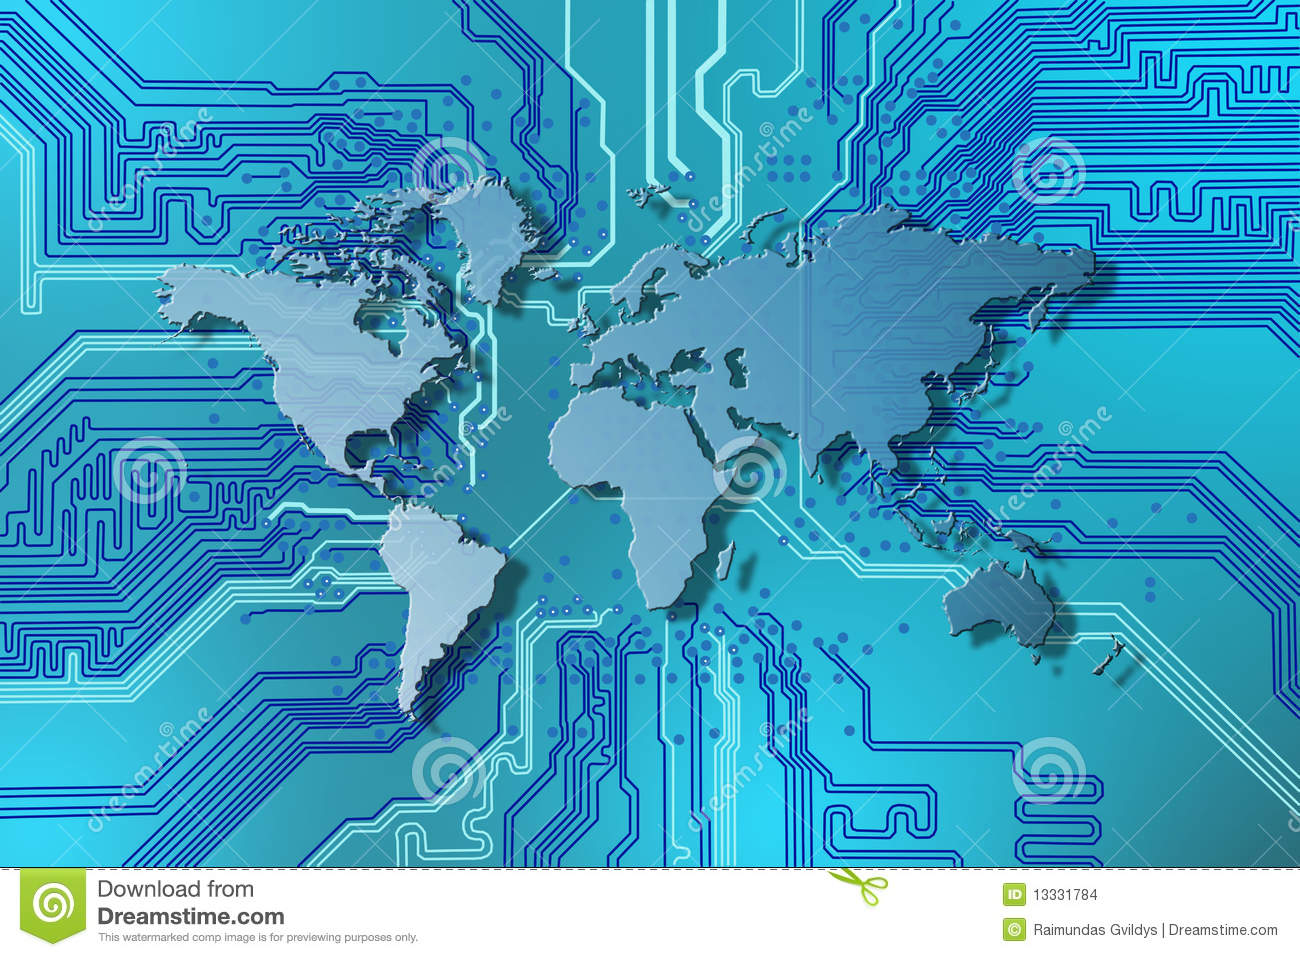 technology internet background preview dreamstime